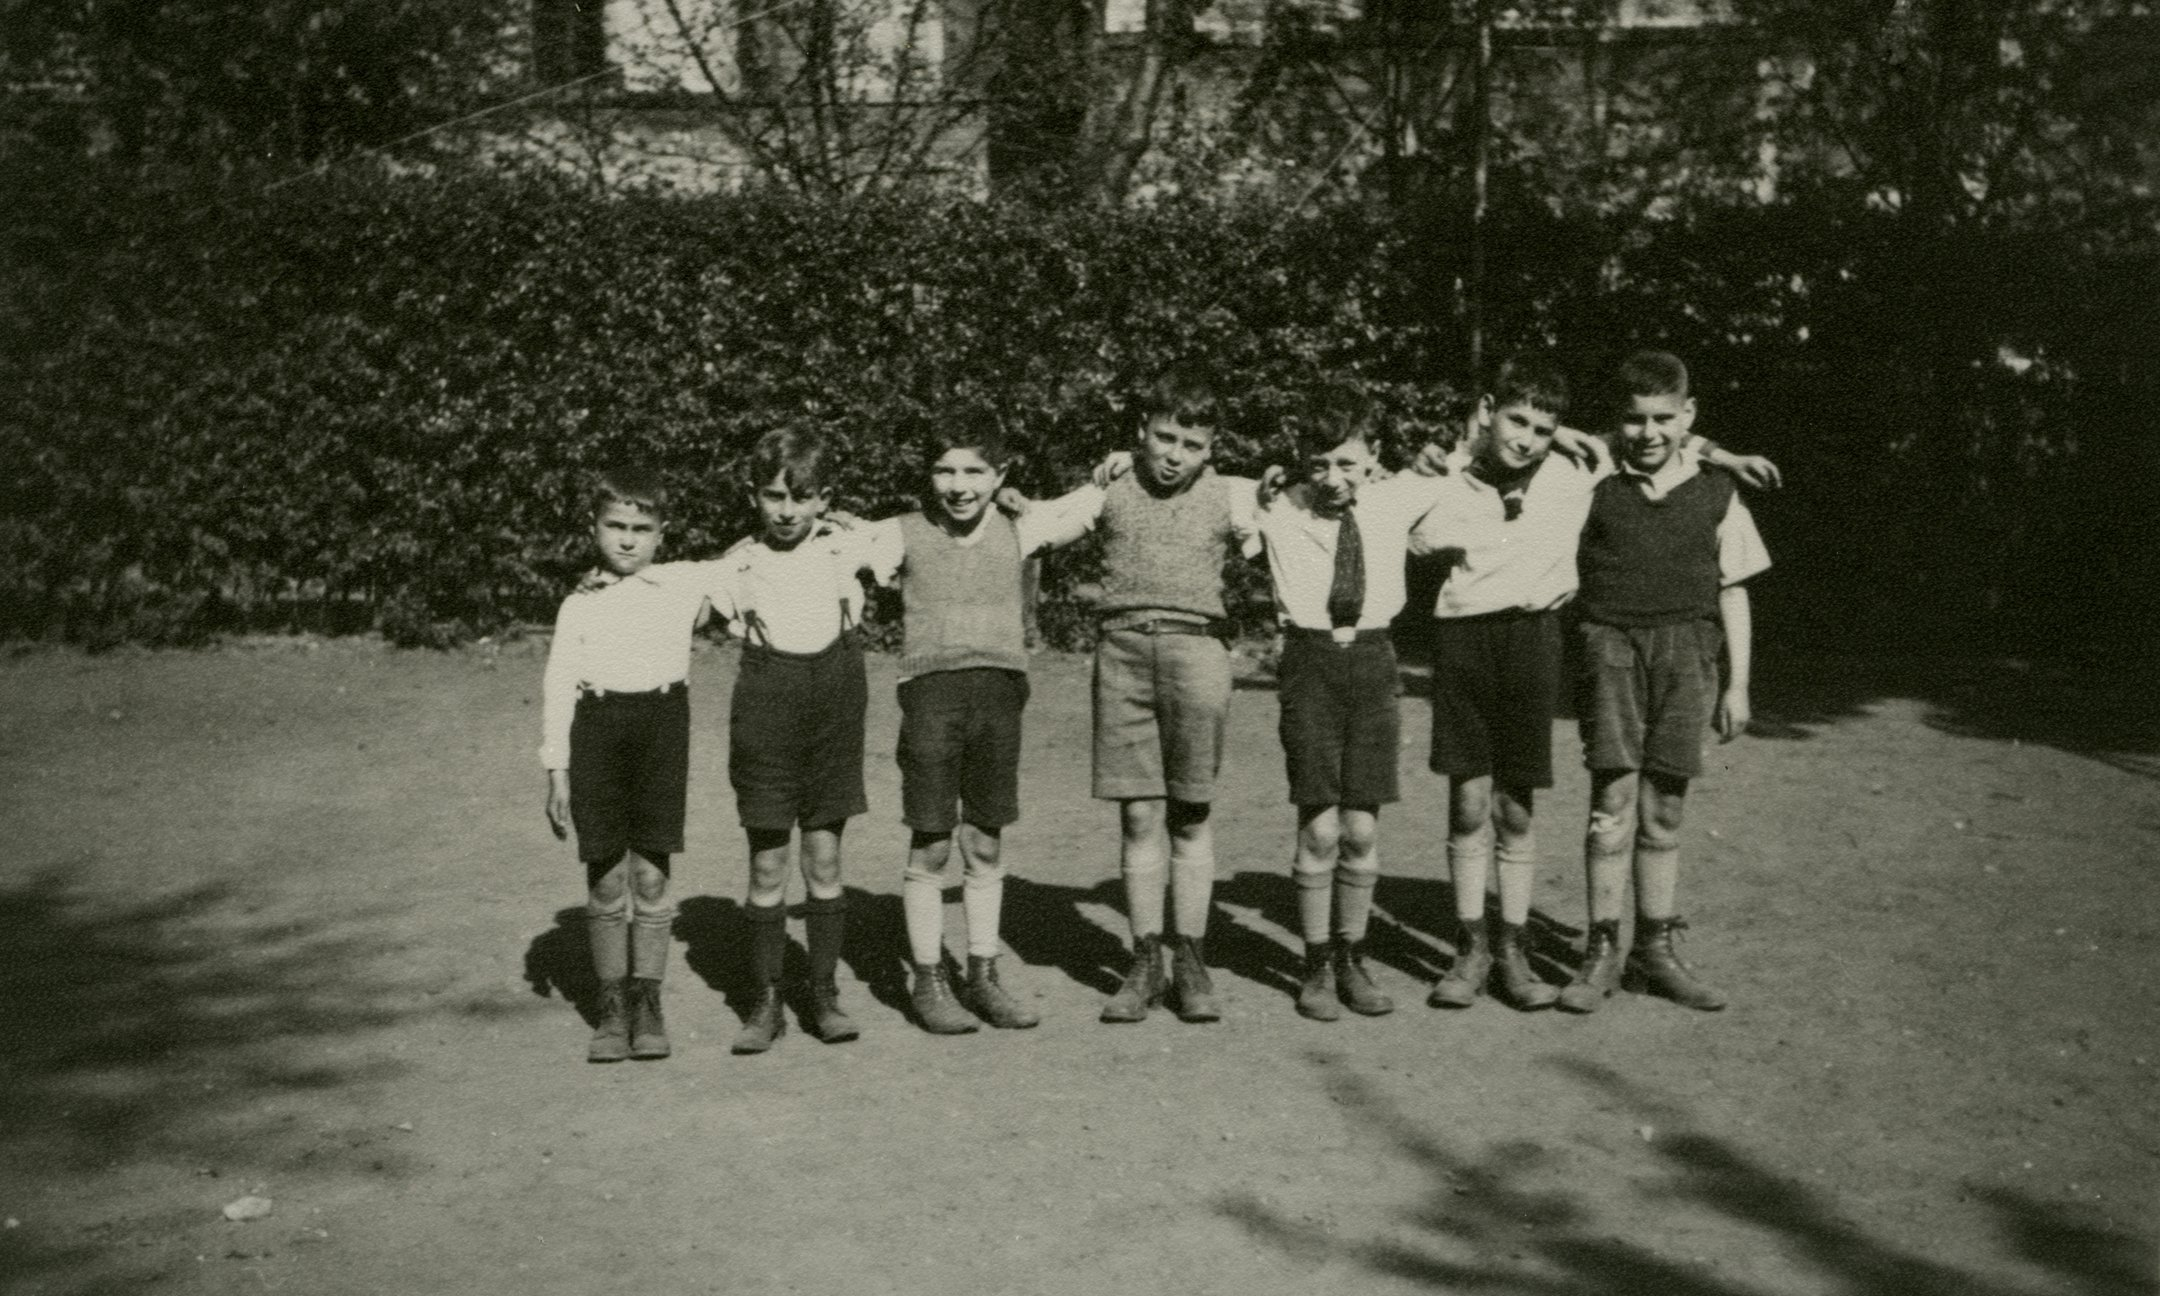 Because many children are emigrating, a farewell photo is taken of a few boys from Peter's class, around 1936. Peter is in the middle.